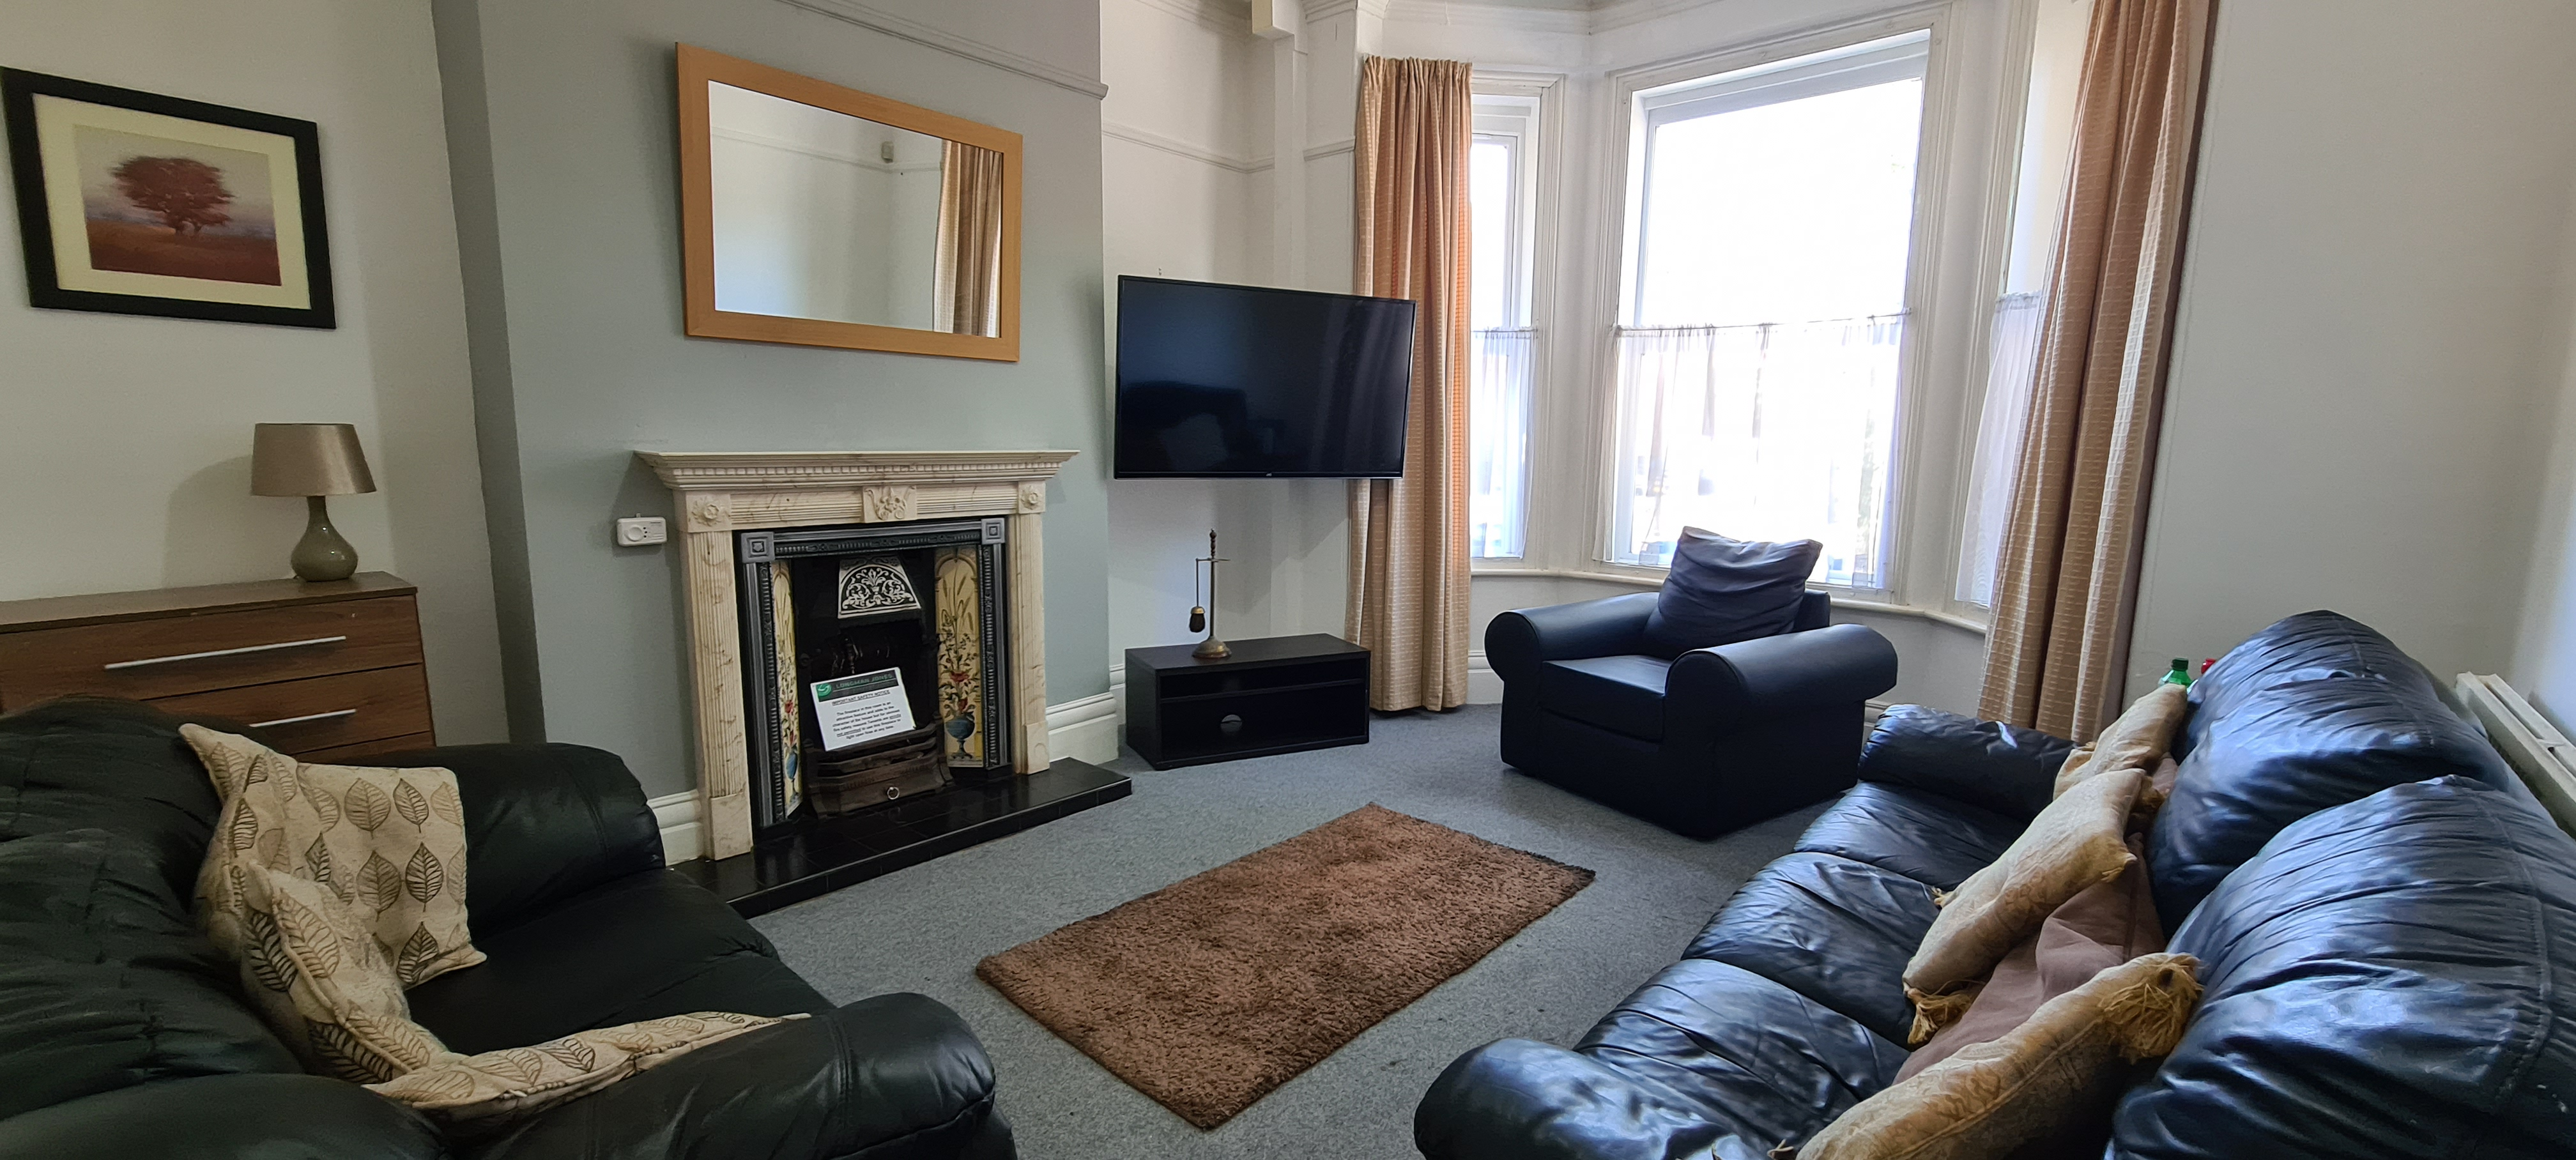 Longman Jones Student Accommodation Available academic year 21/22! Beresford Avenue (Ref: 1129)